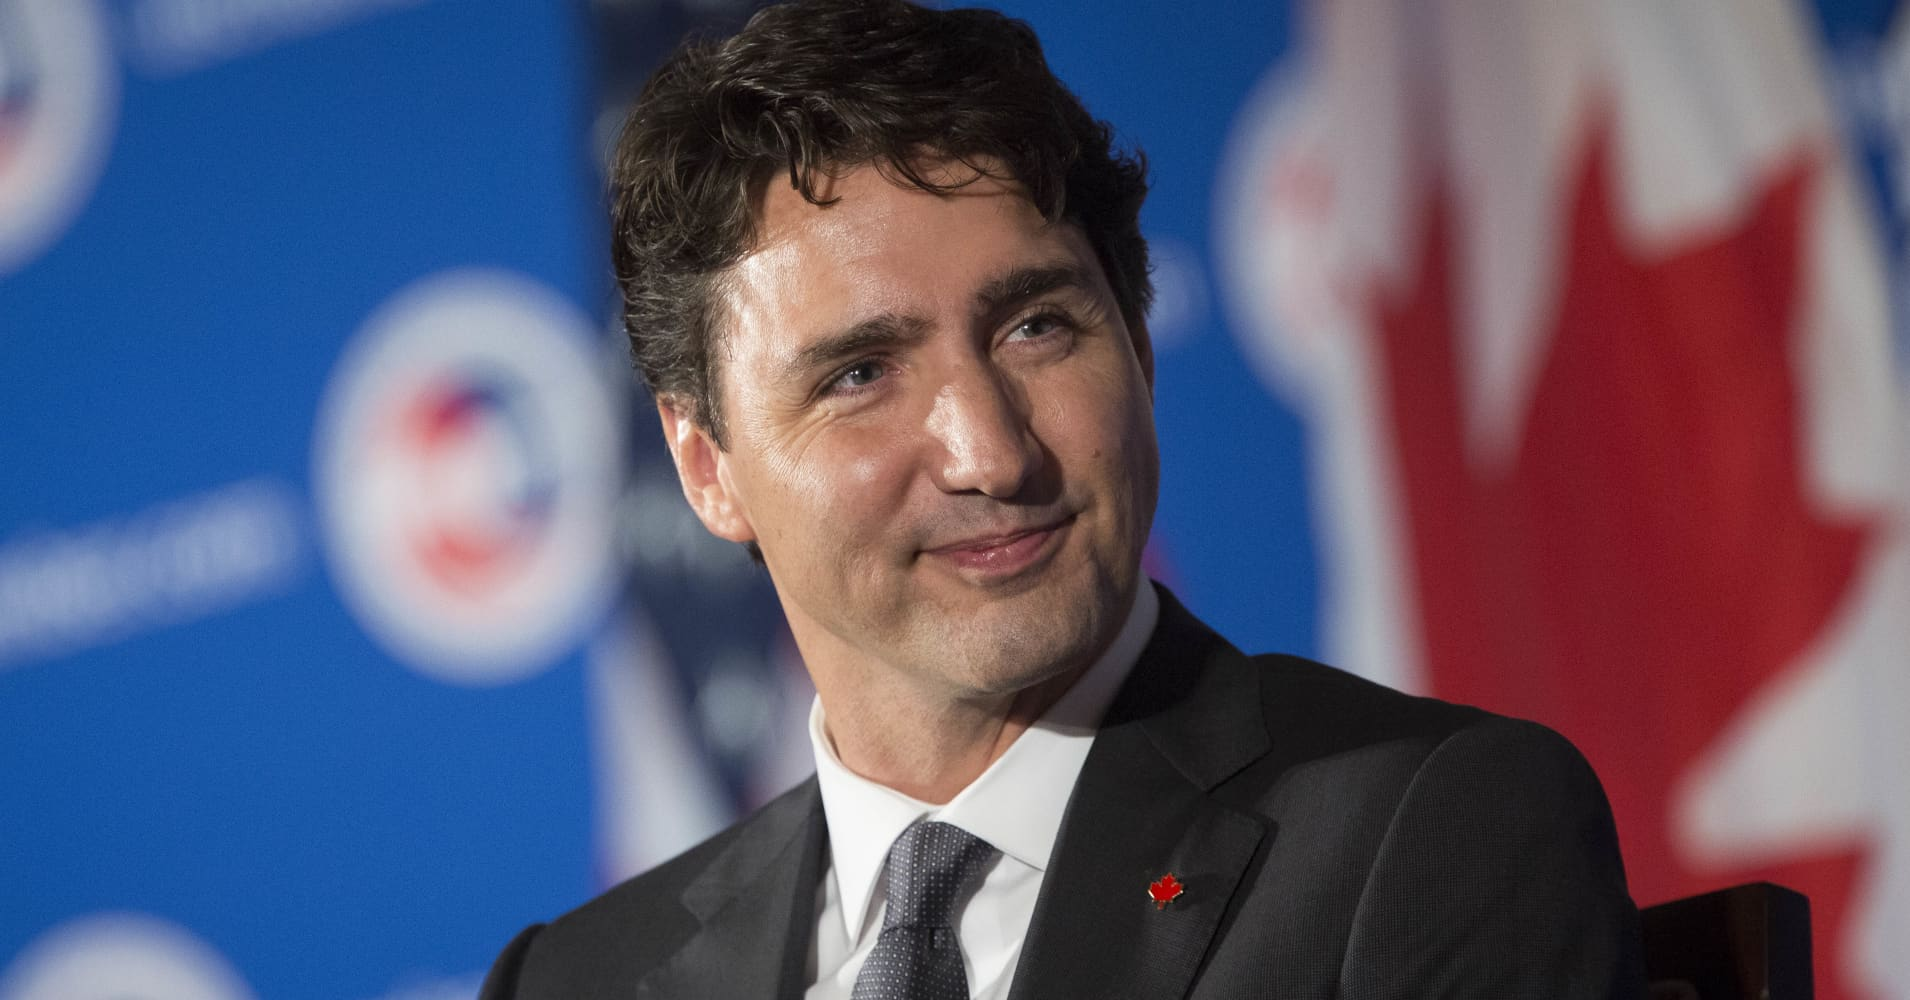 Justin Trudeau: Robots are going to steal some jobs, but Canada has a plan to help